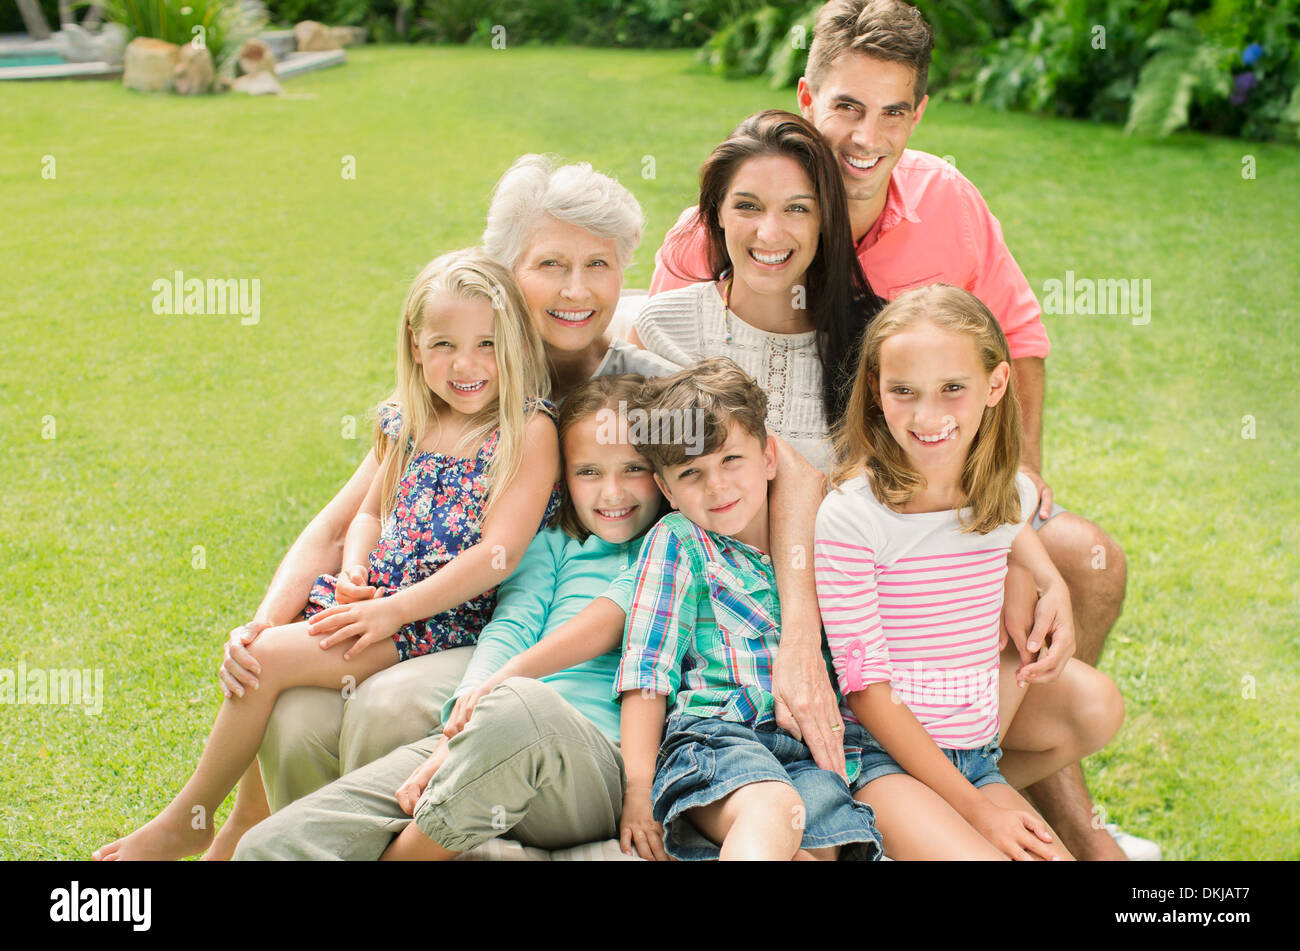 Multi-generation family smiling together in backyard Stock Photo